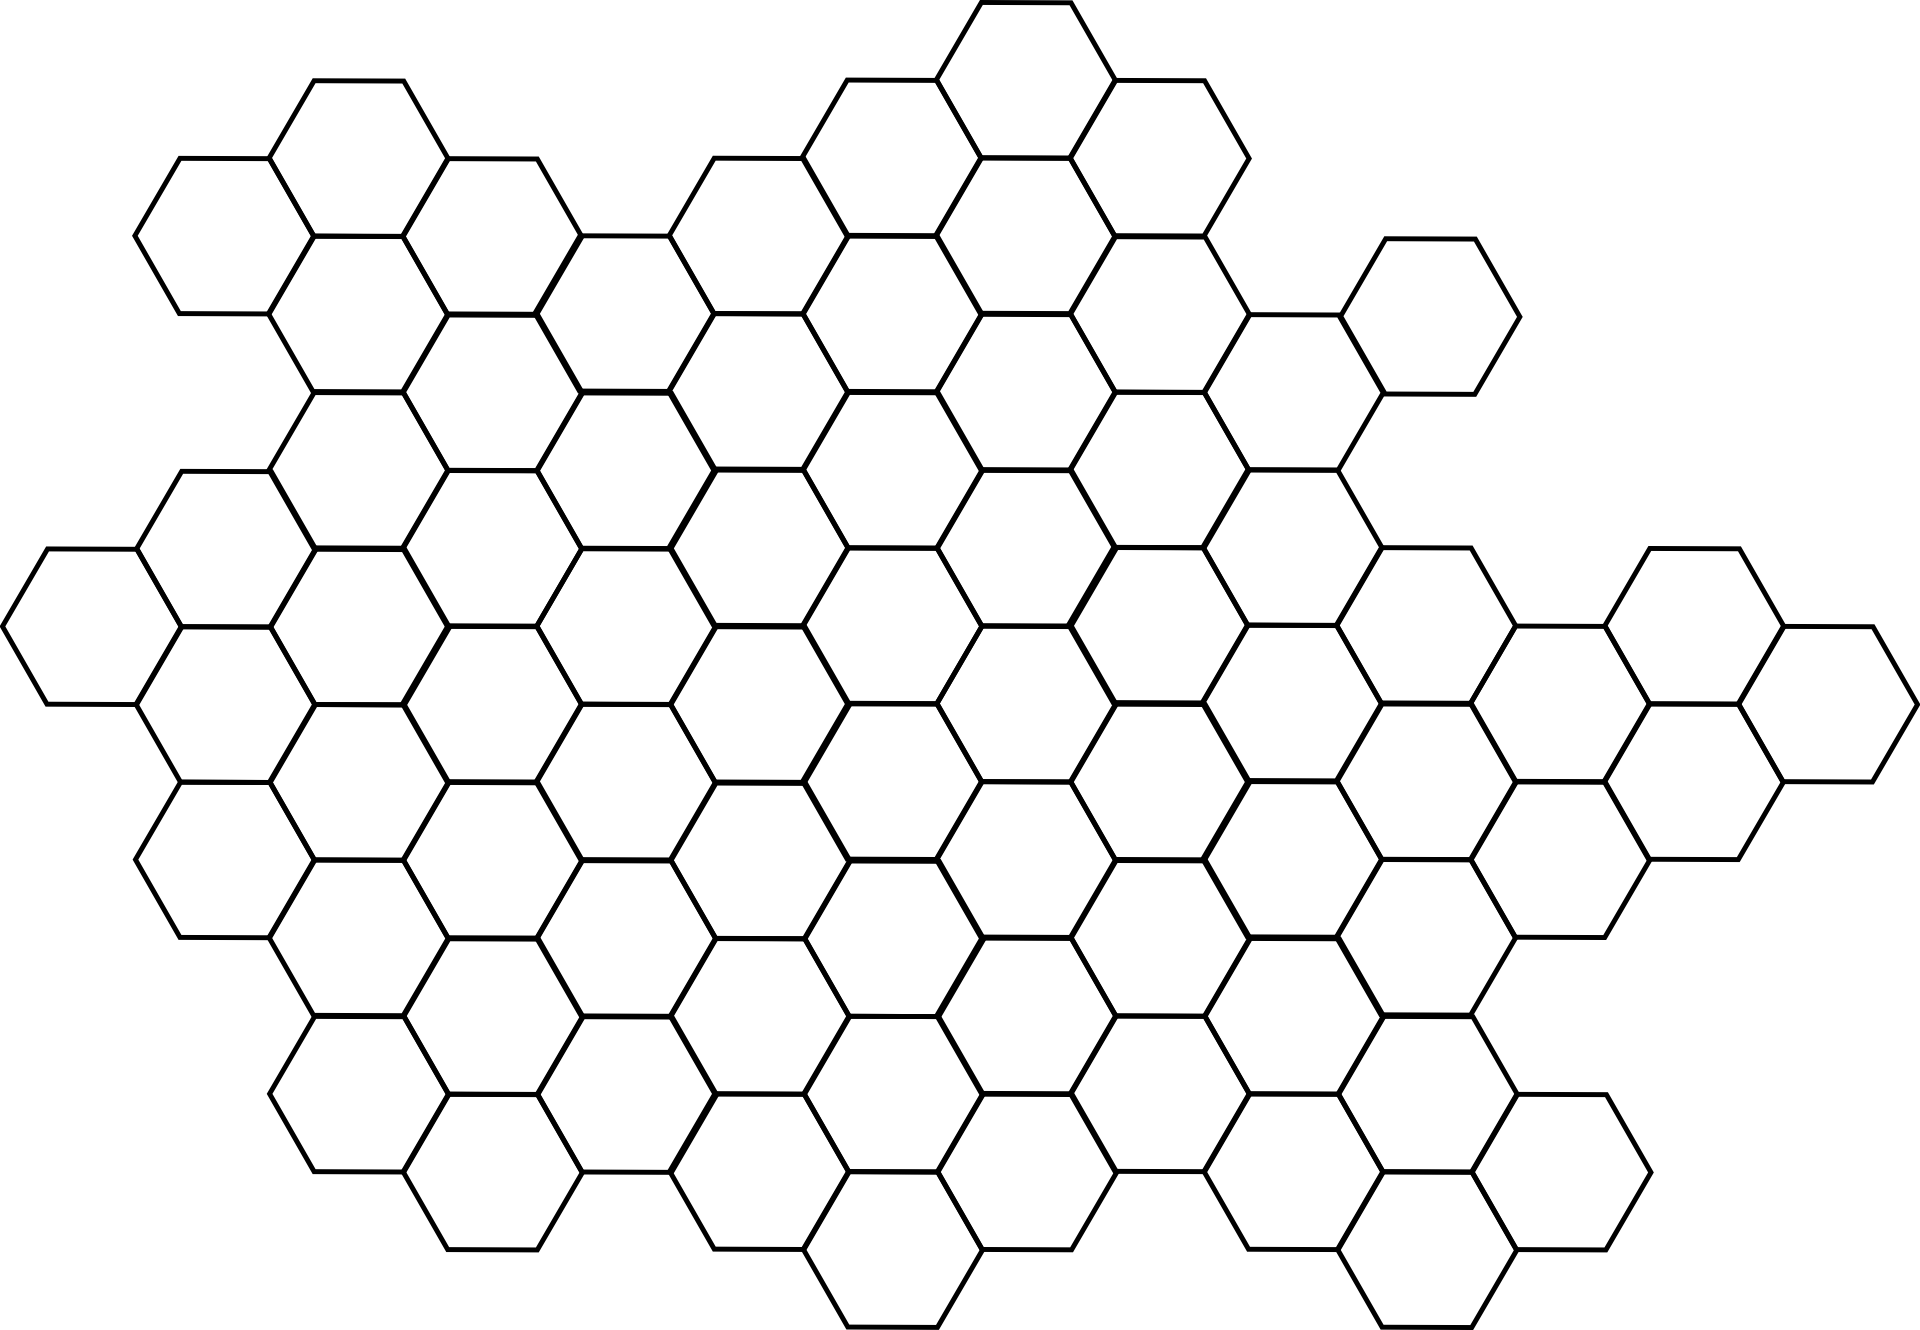 honeycomb clipart honeycomb design